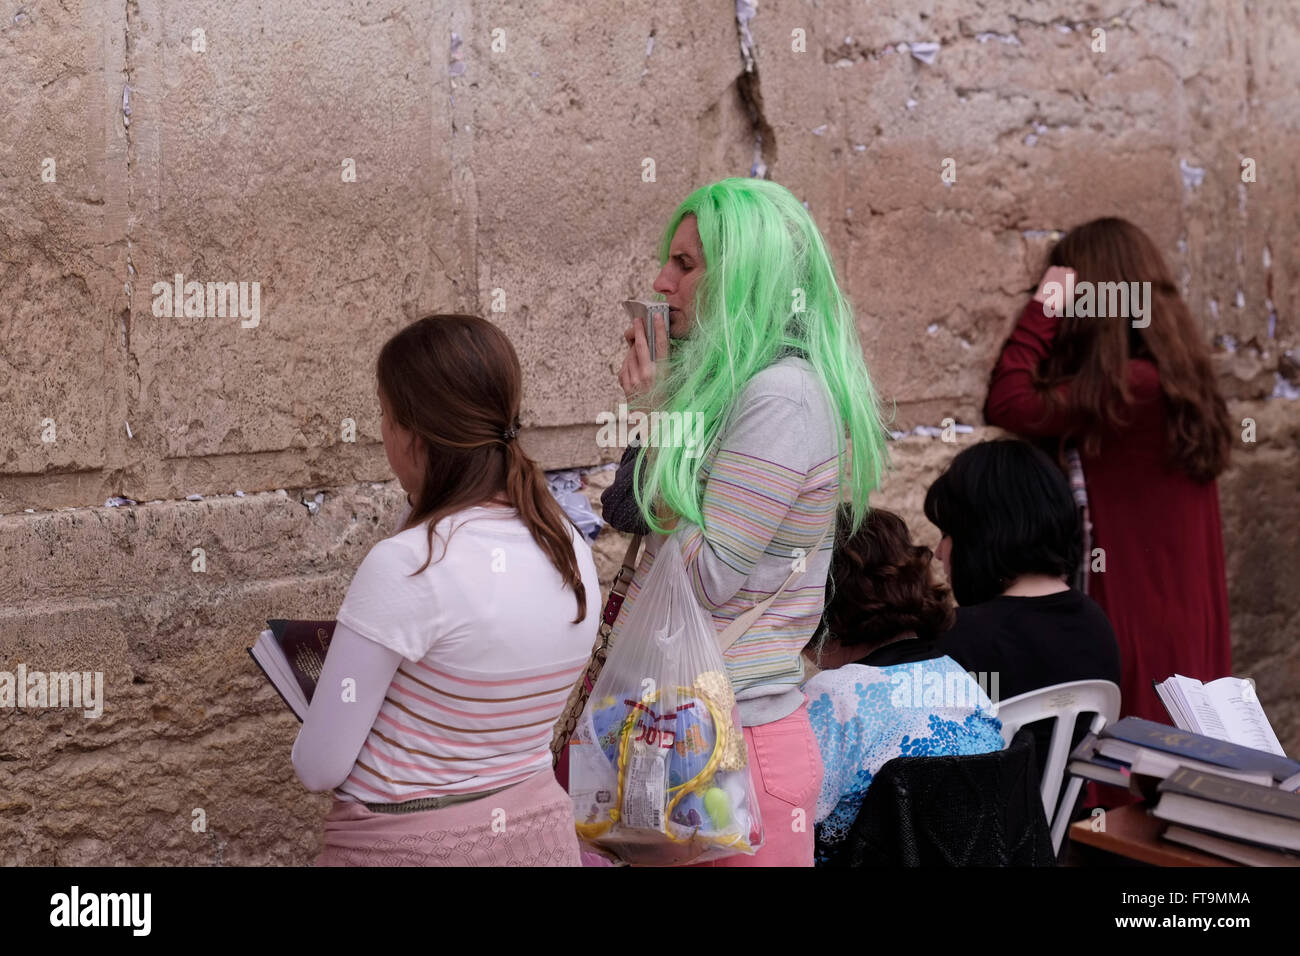 A Jewish Woman Wearing A Green Color Costume Wig Praying During The